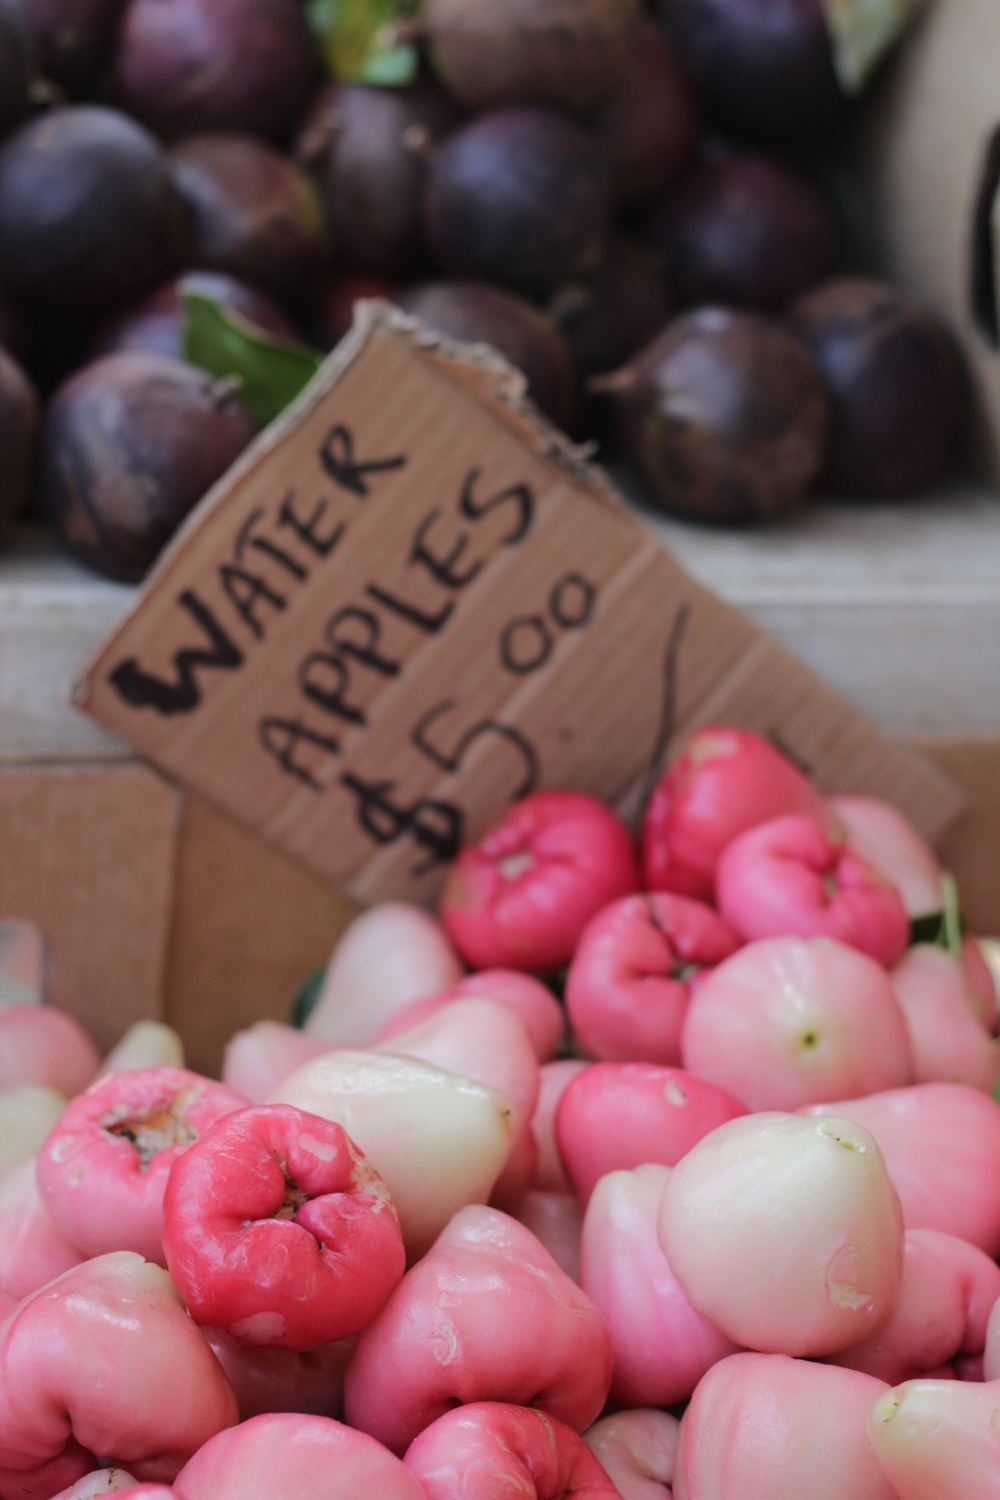 Rose Apples and star apples